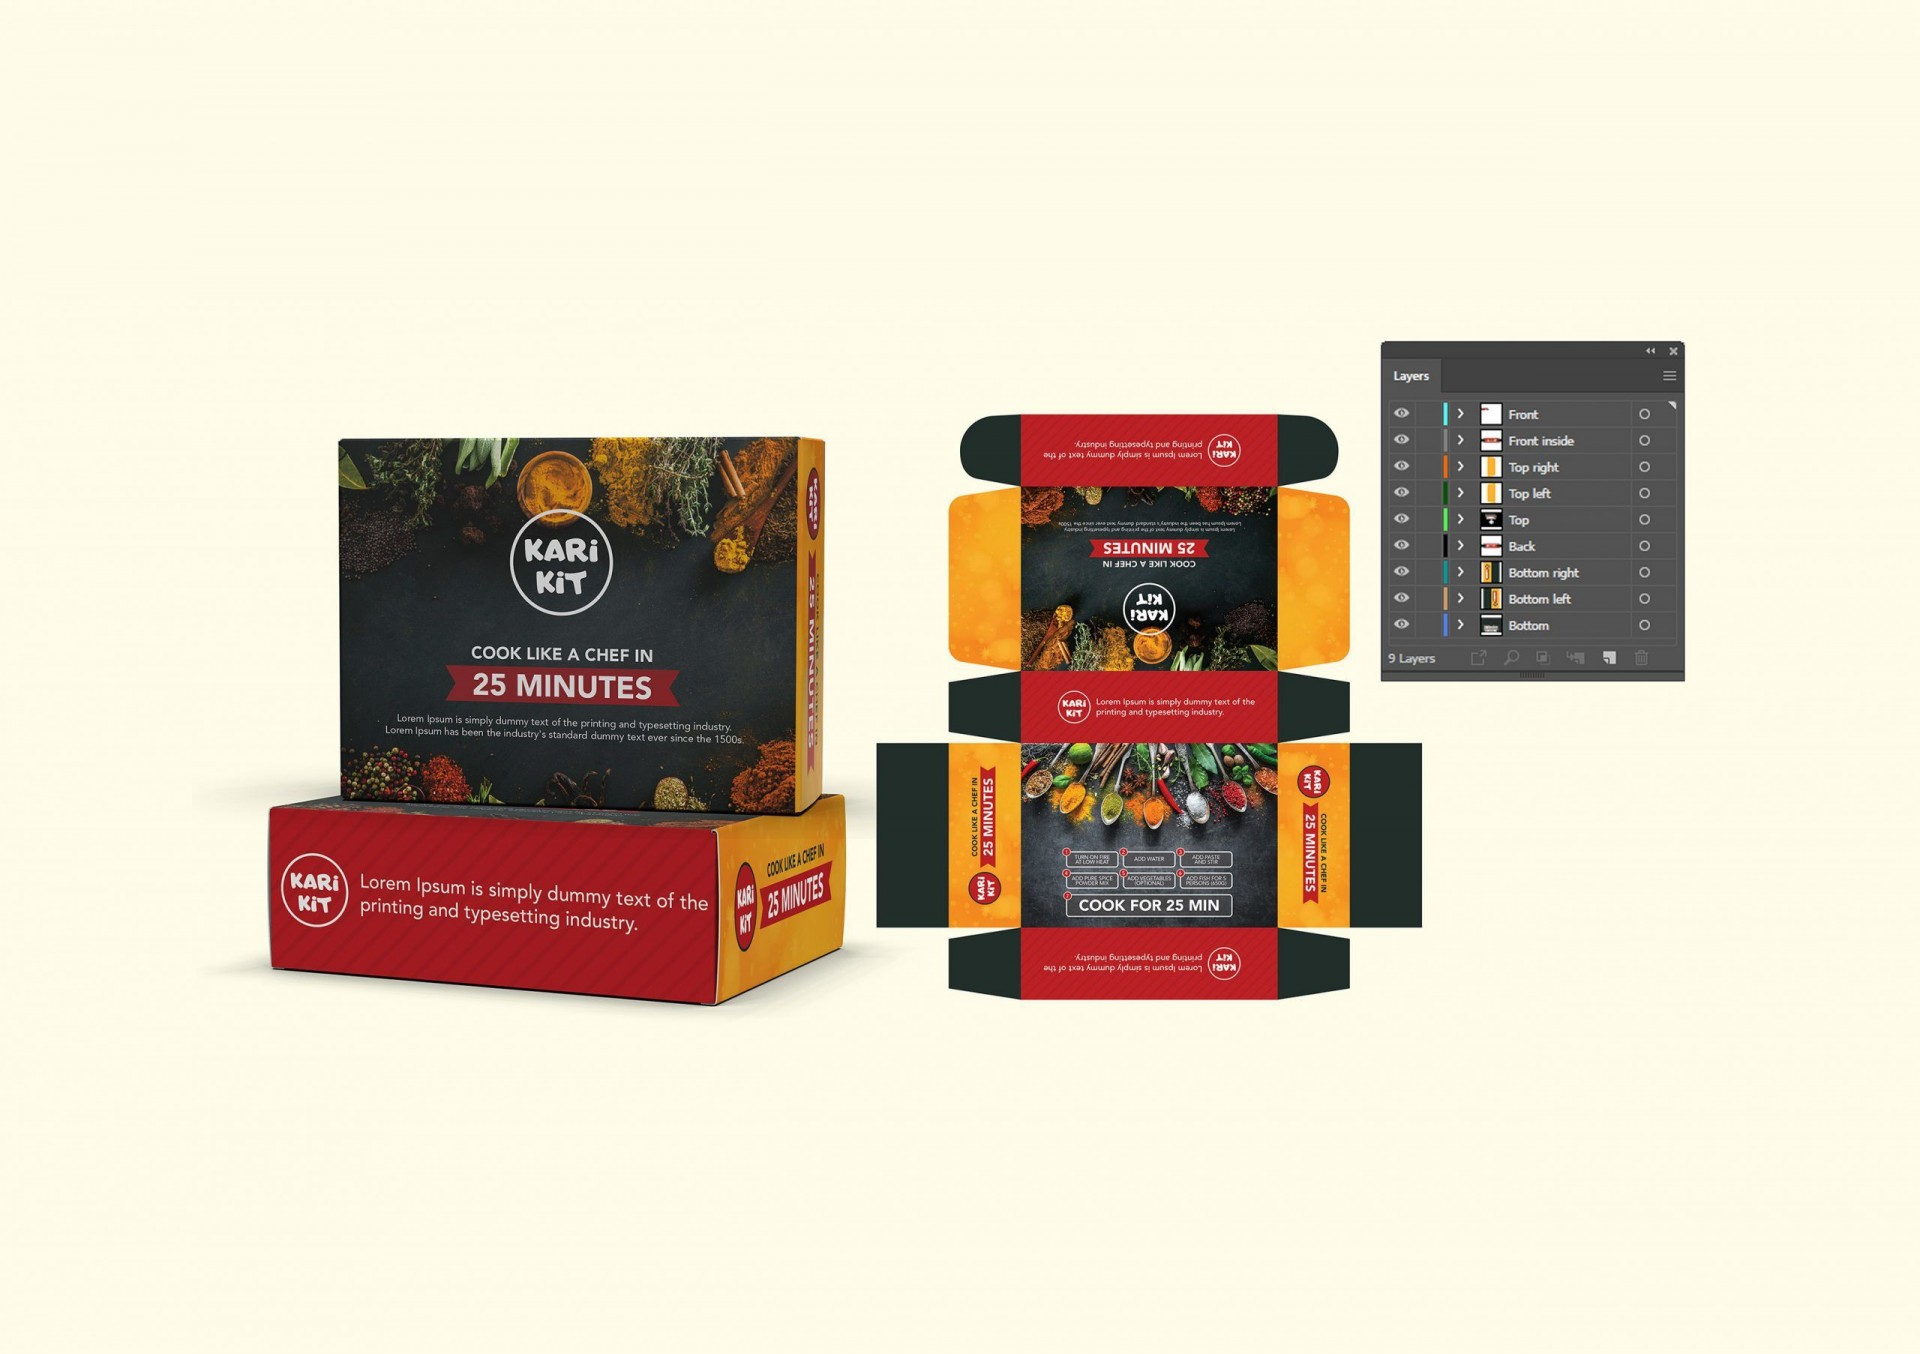 008 Fearsome Product Packaging Design Template High Definition  Templates Free Download Sample1920